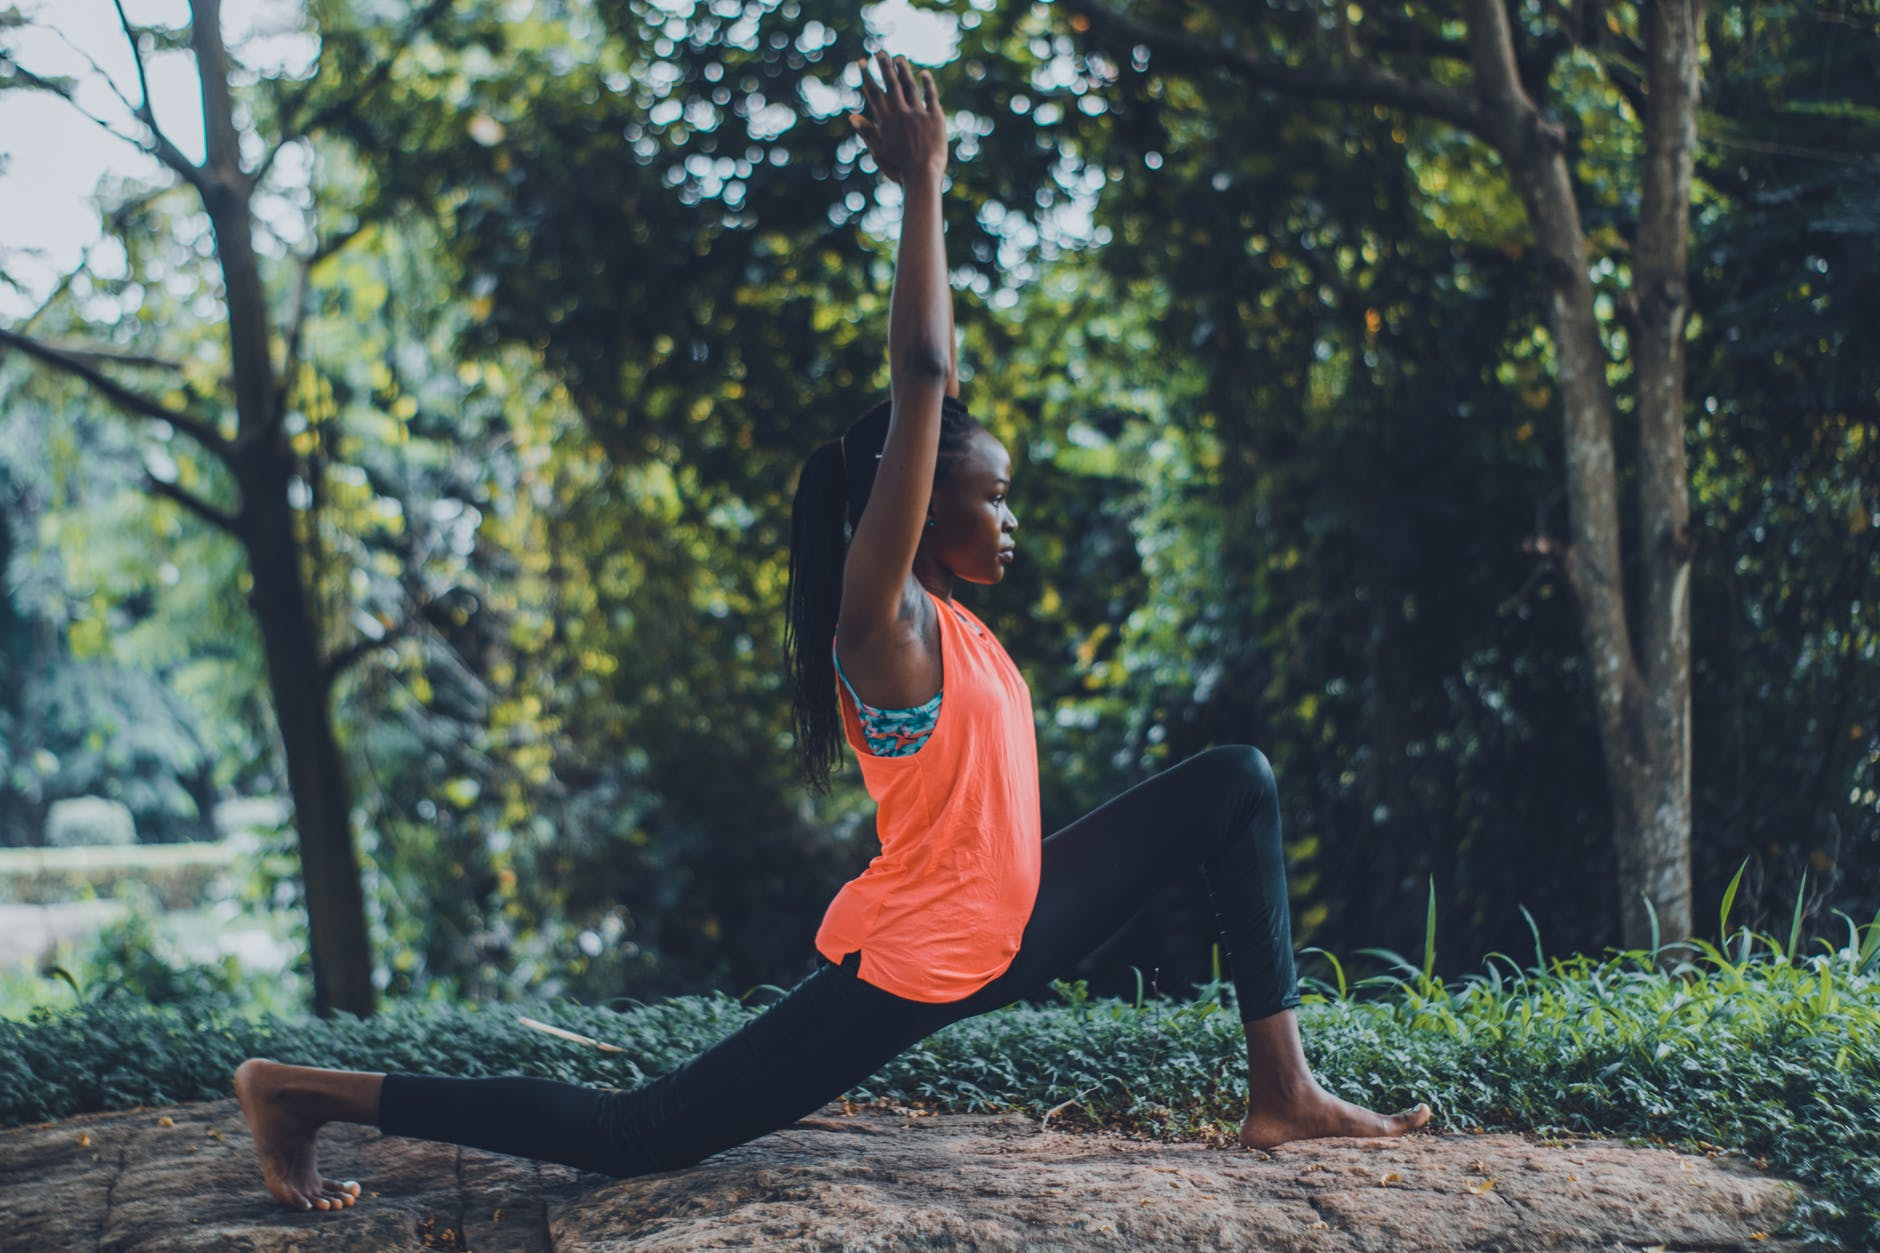 photo of woman in orange tank top and black pants striking a yoga pose outdoors